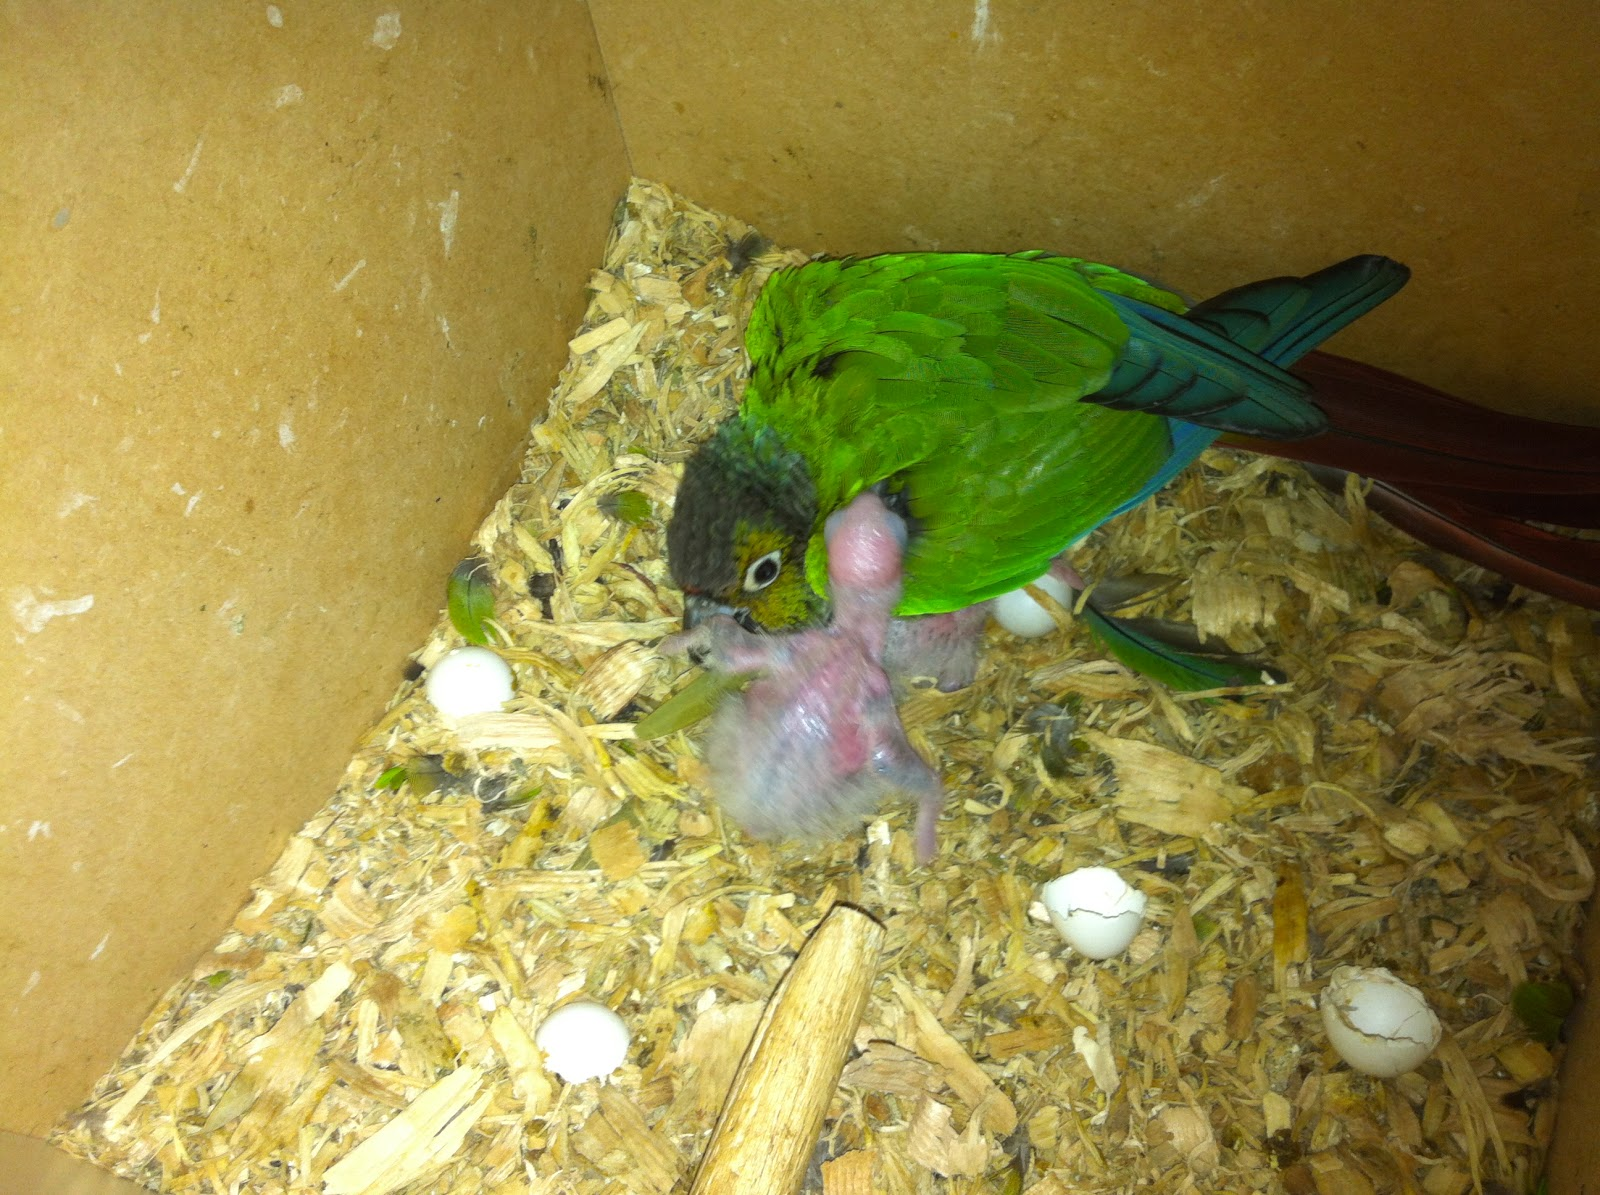 Green-Cheeked Conure Facts, Habitat, Diet, Adaptations, Pictures